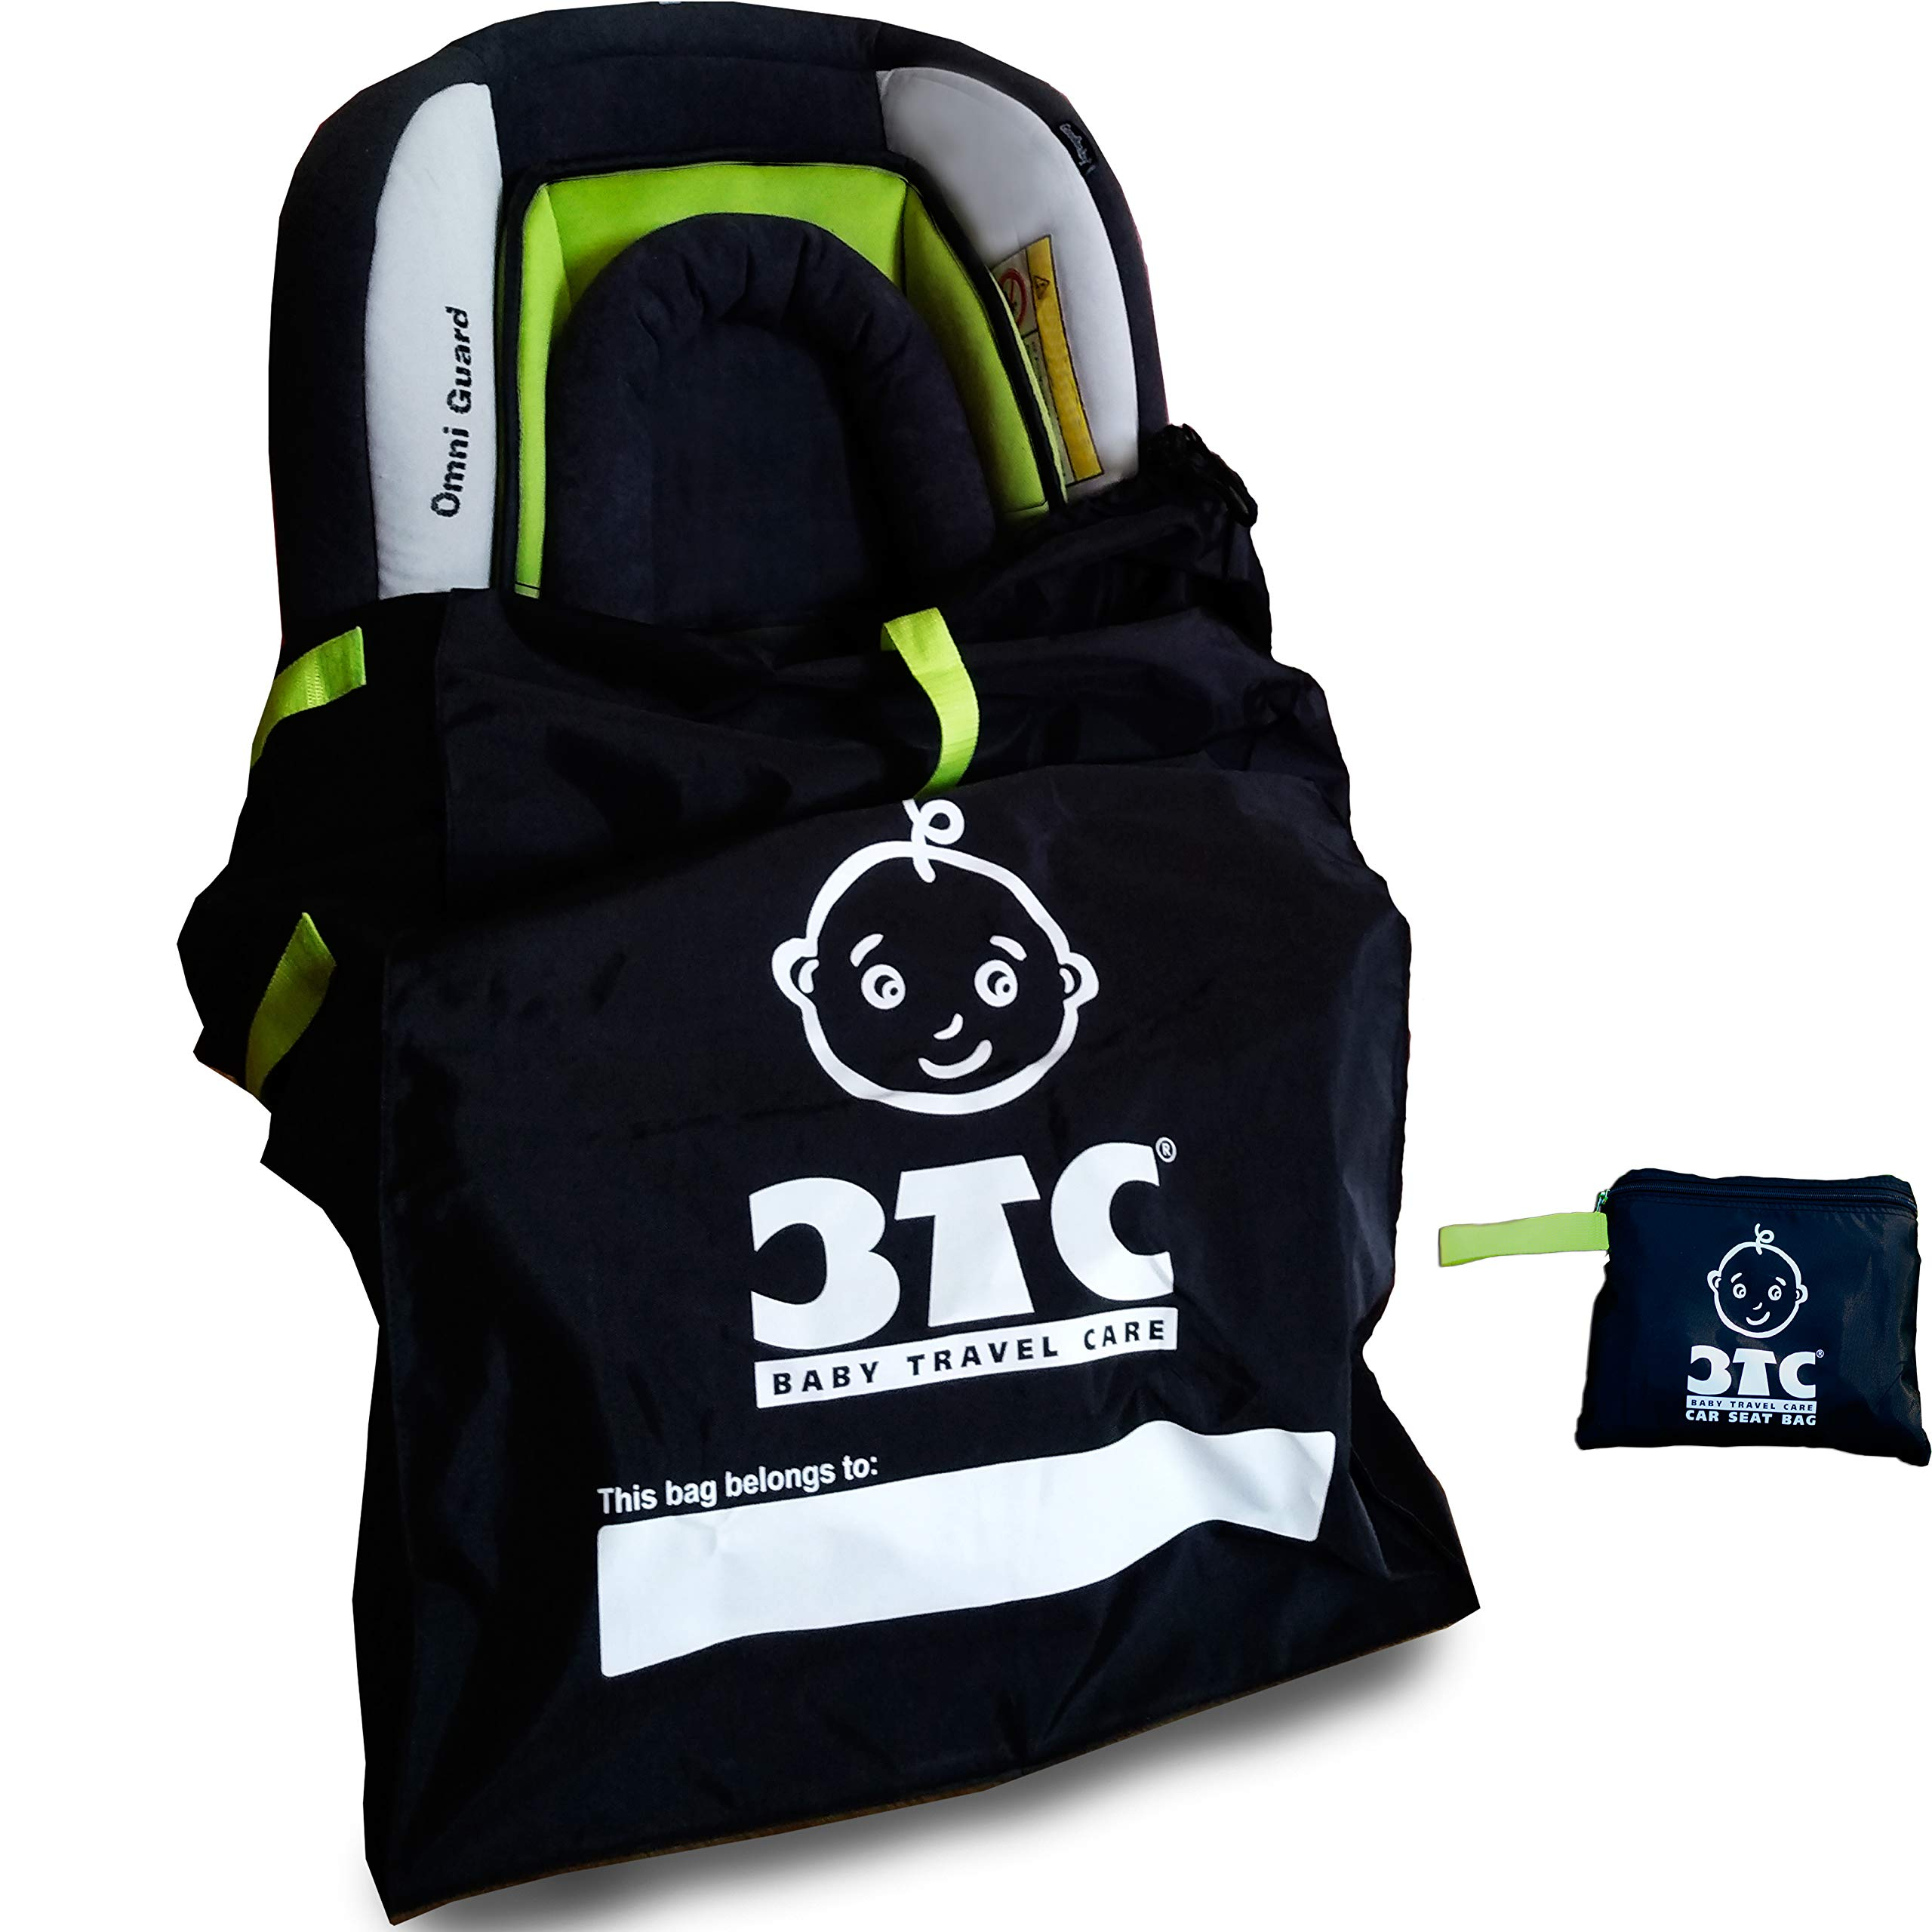 Car Seat Travel Bag + Car Seat Travel Strap - Gate Check Bag for Car Seats by BTC - Baby Travel Care